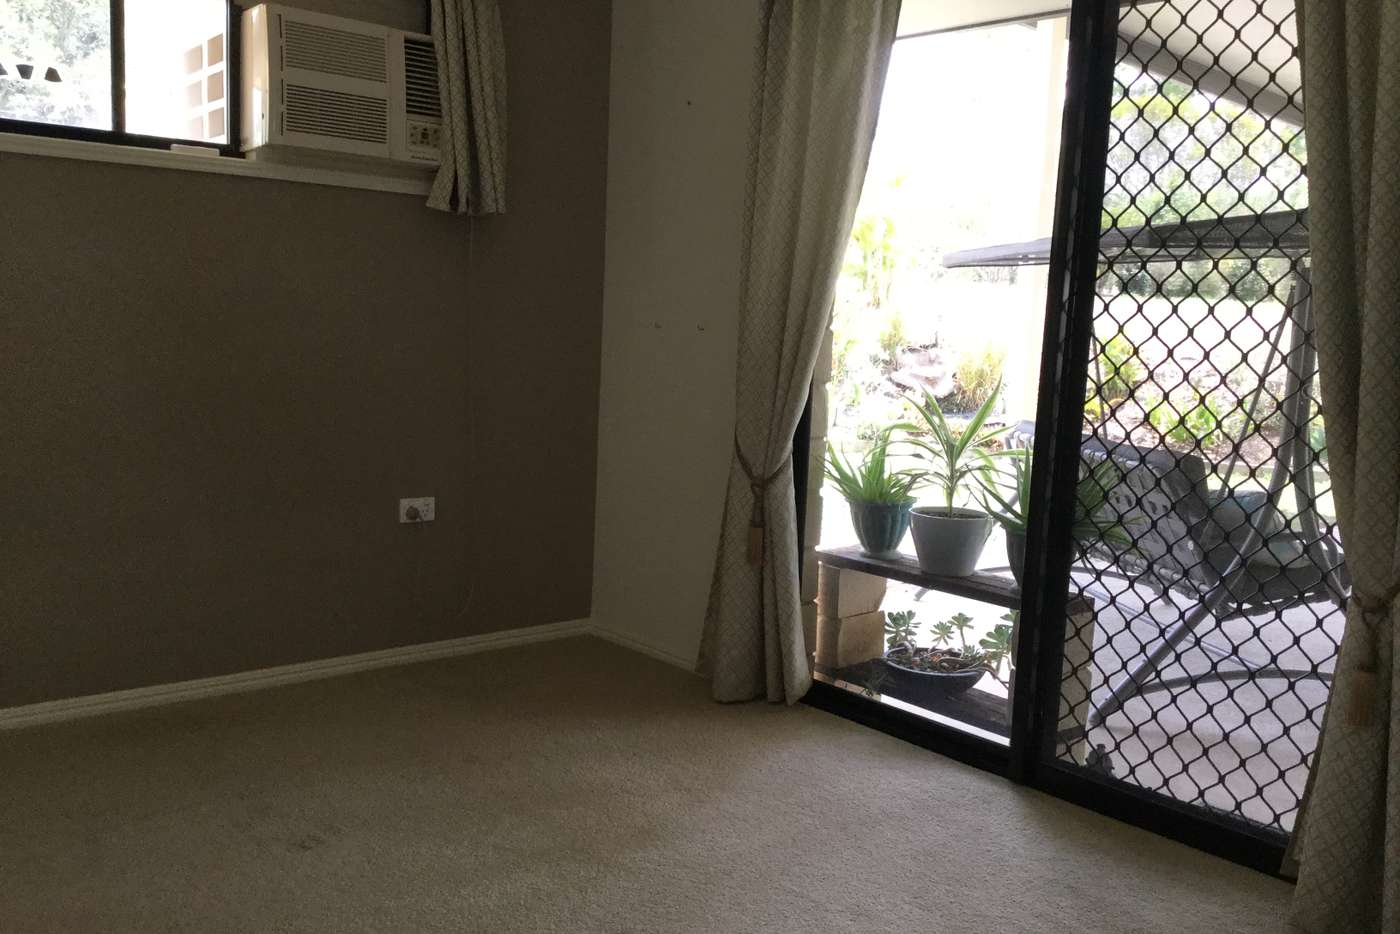 Seventh view of Homely house listing, 5 Possum Place, Apple Tree Creek QLD 4660